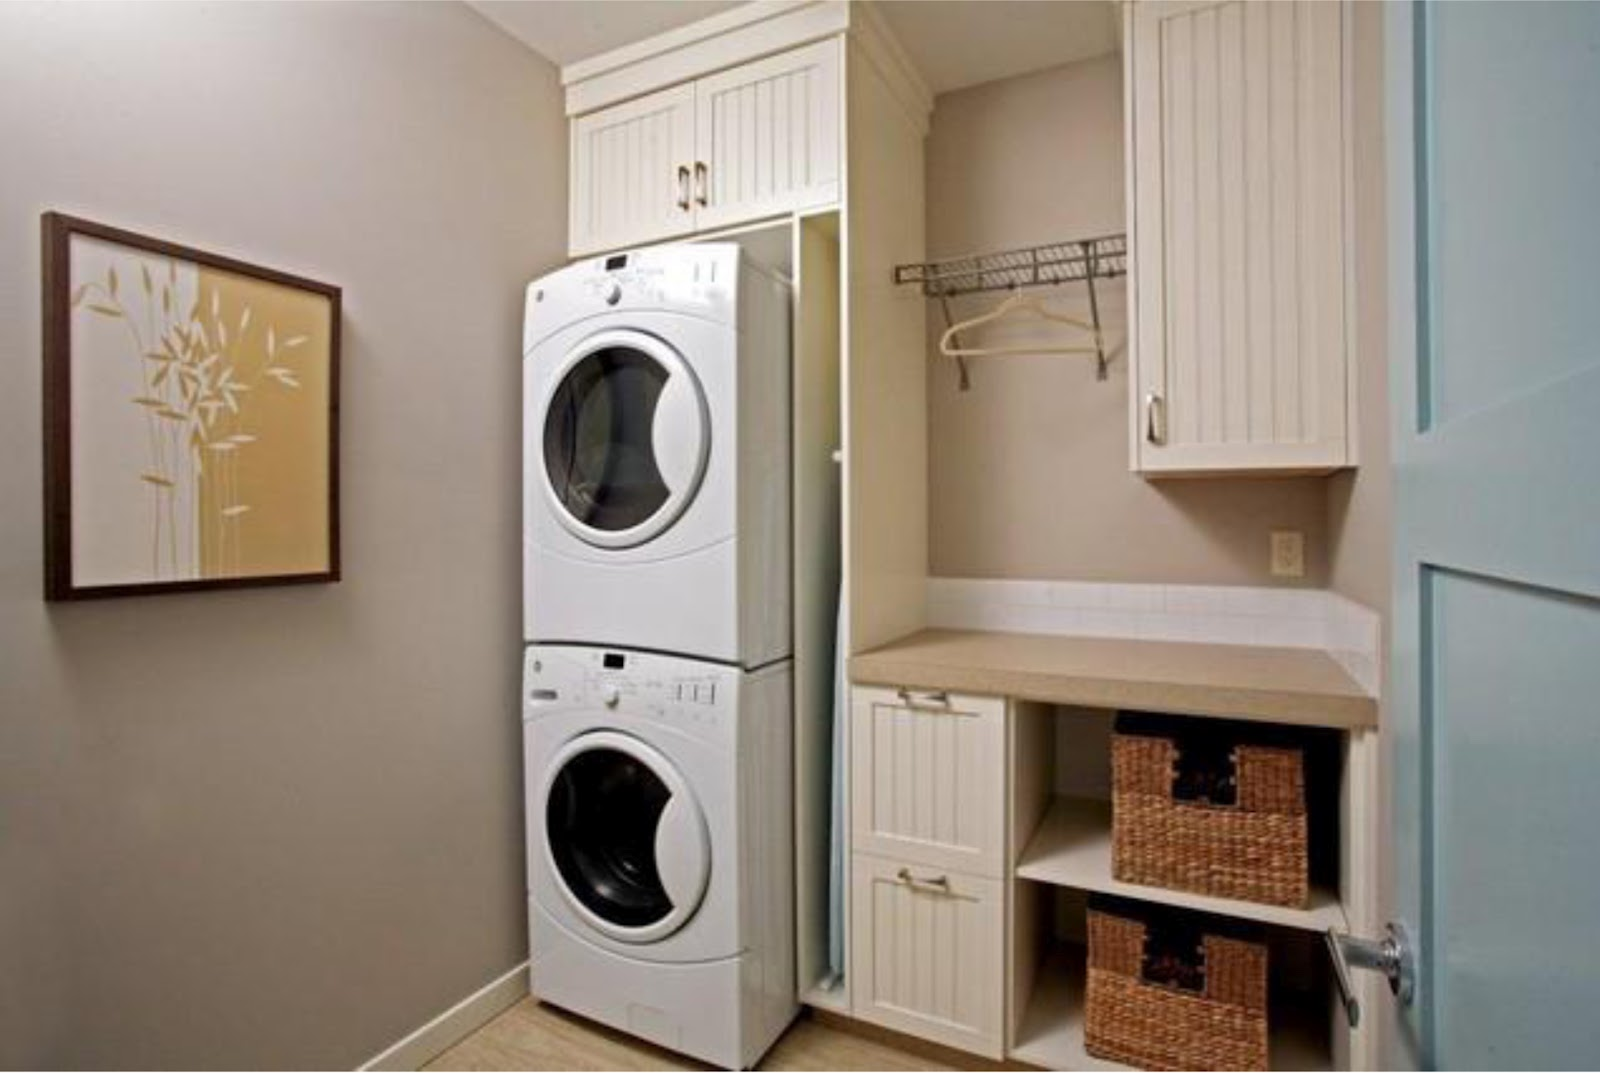 Simplifying remodeling designer 39 s touch 10 tidy laundry rooms - Washer dryers for small spaces ideas ...